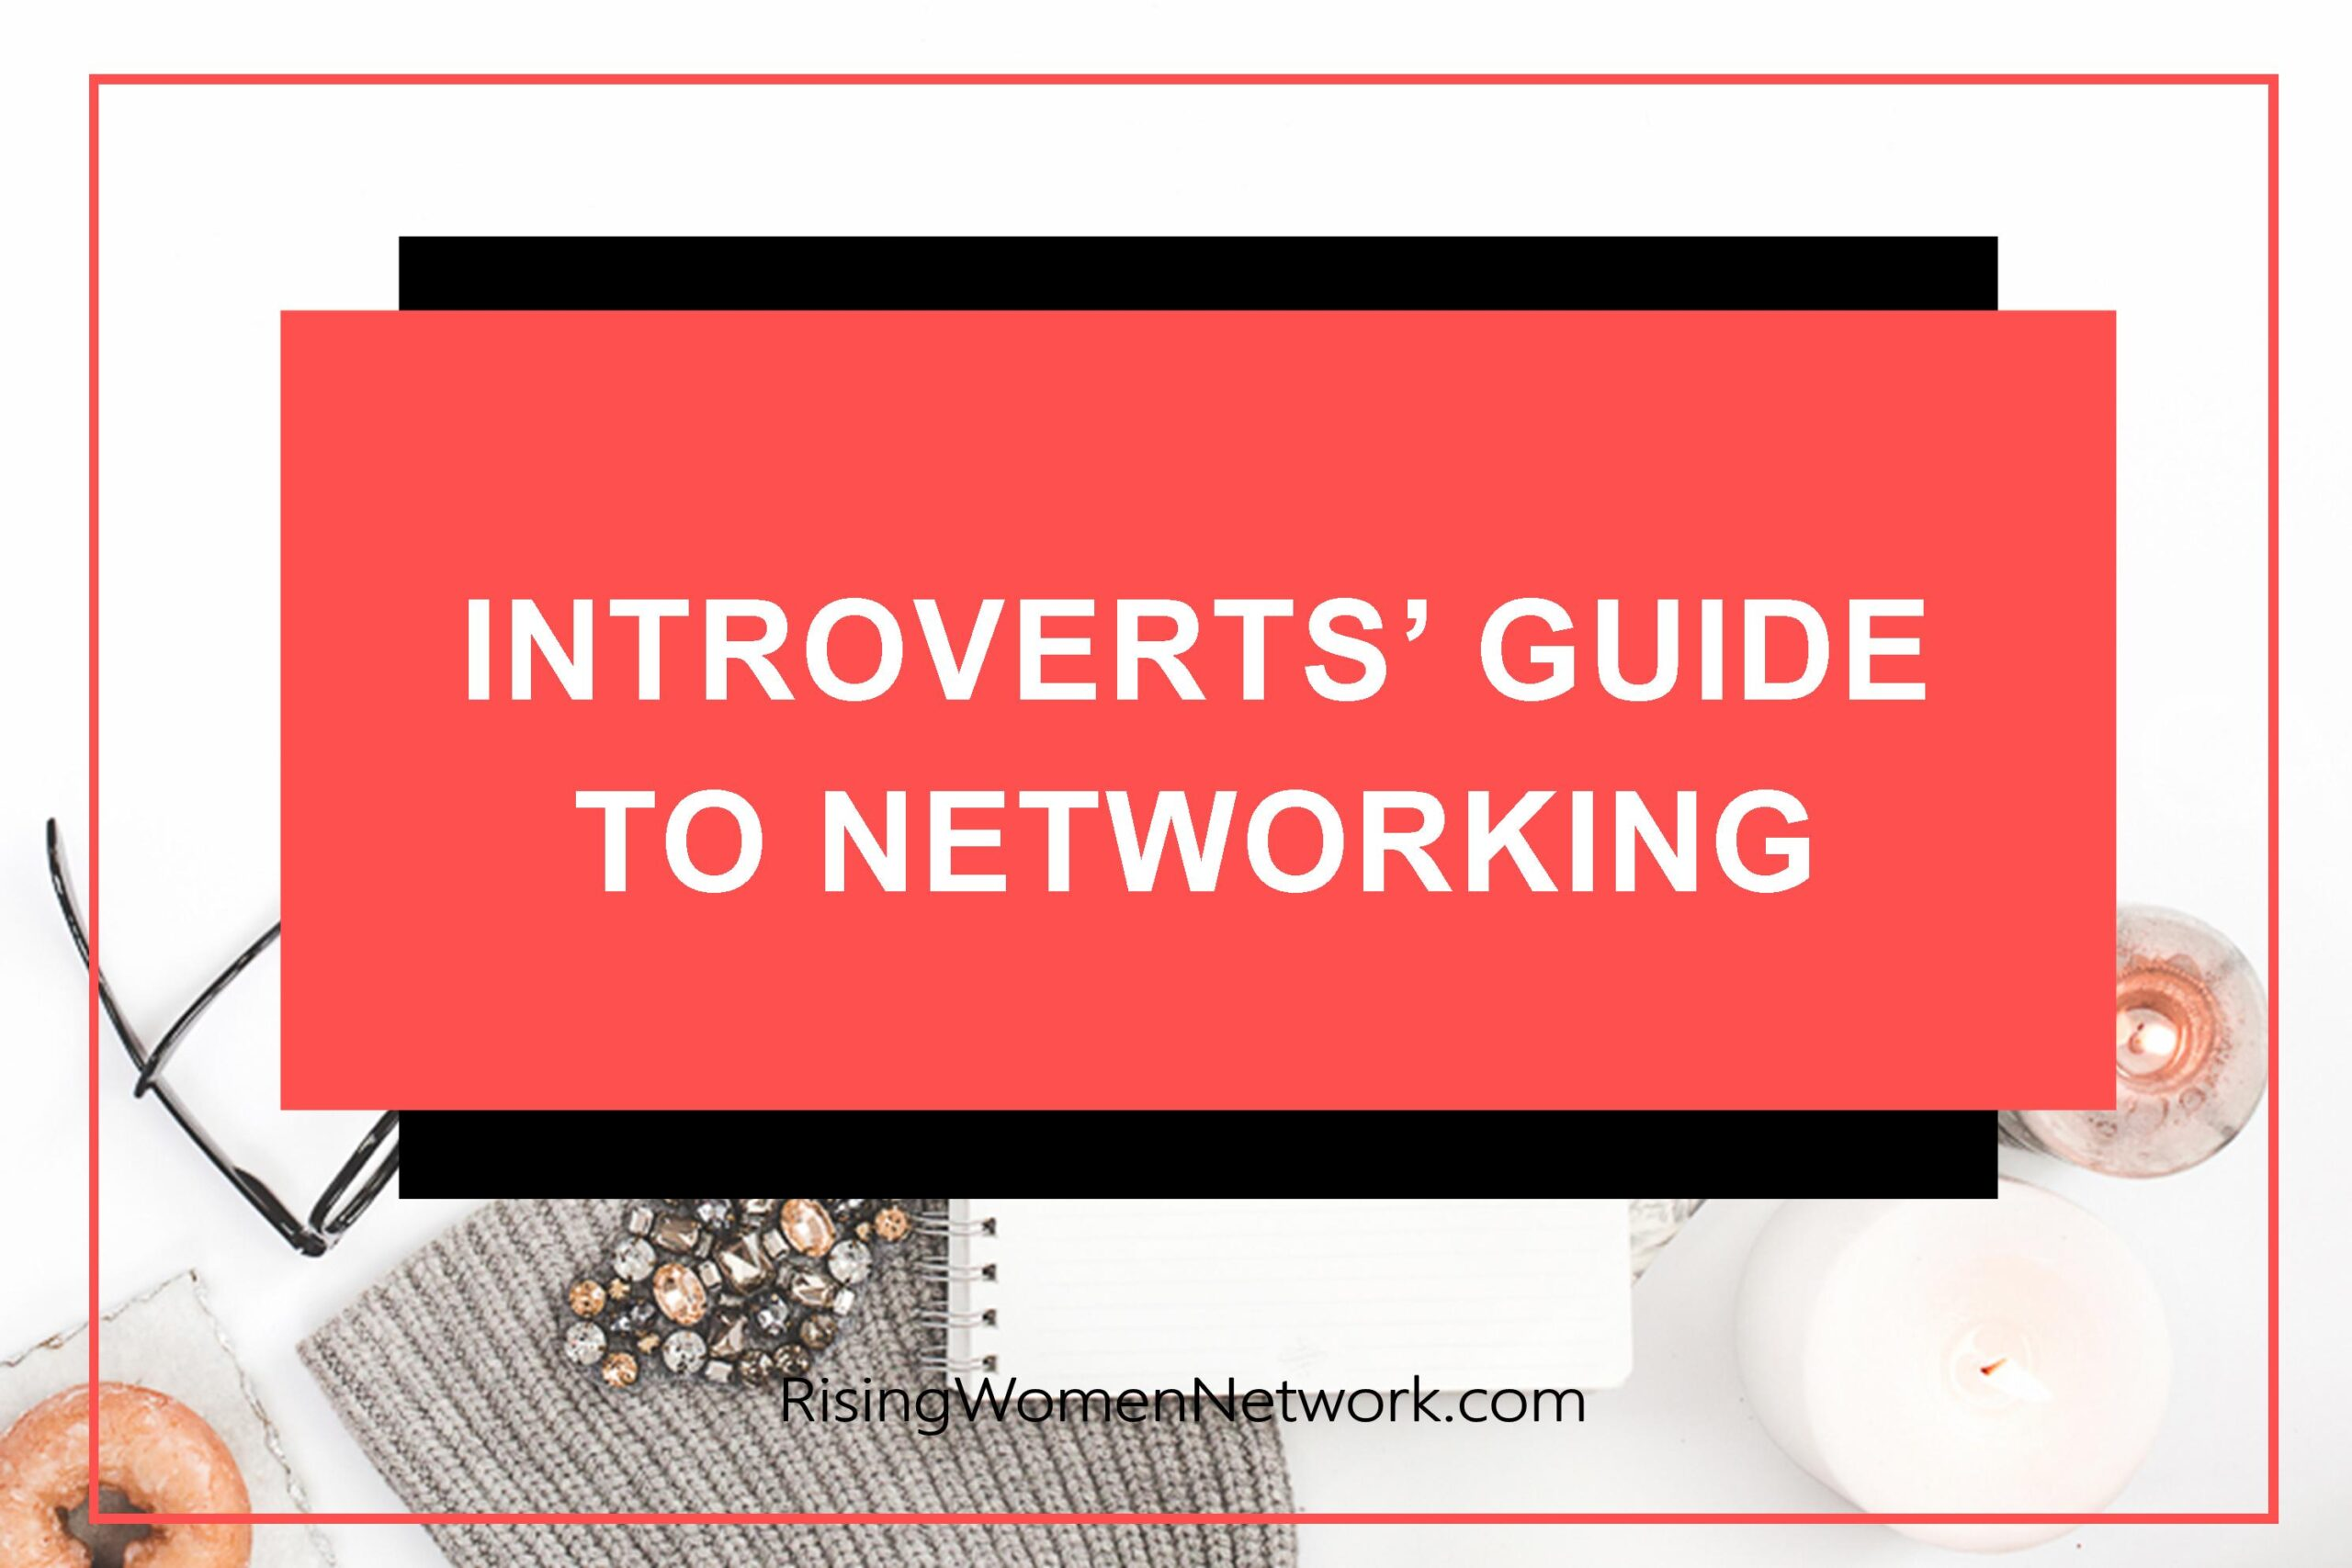 The Introvert's Guide to Networking. For those of us that have a tendency to be a bit of an introvert, this day and age is perfect for networking.